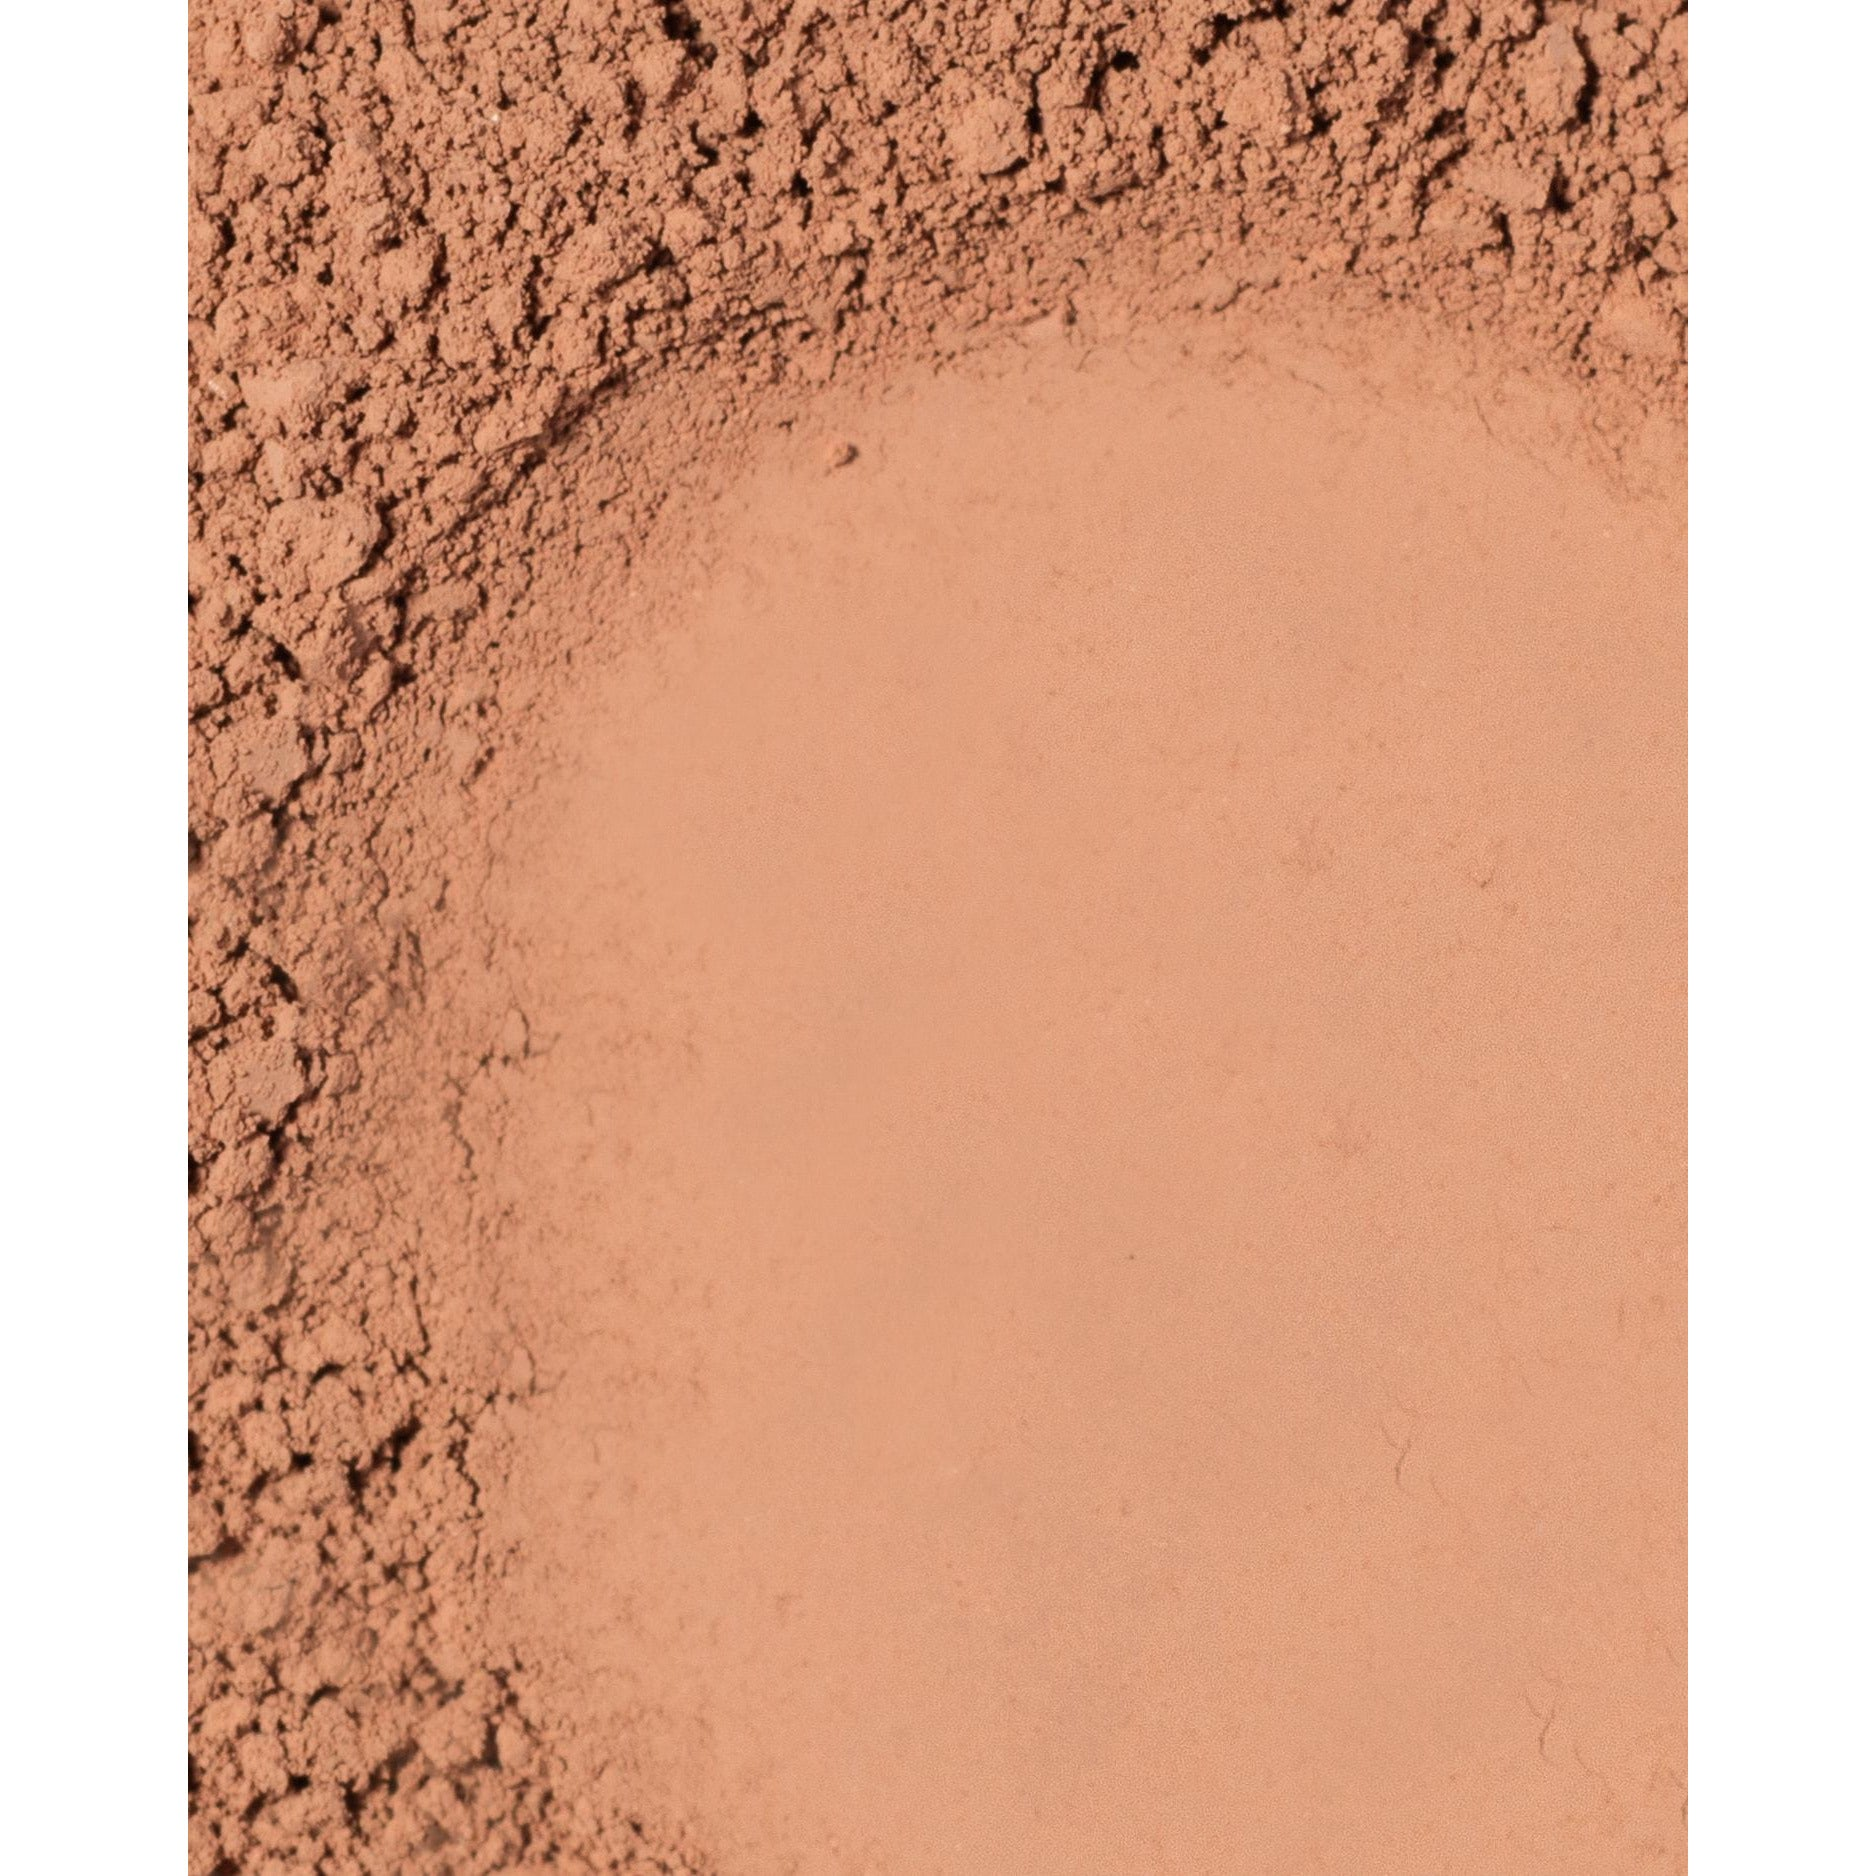 Wise - Omiana Loose Powder Mineral Foundation No Titanium Dioxide and No Mica